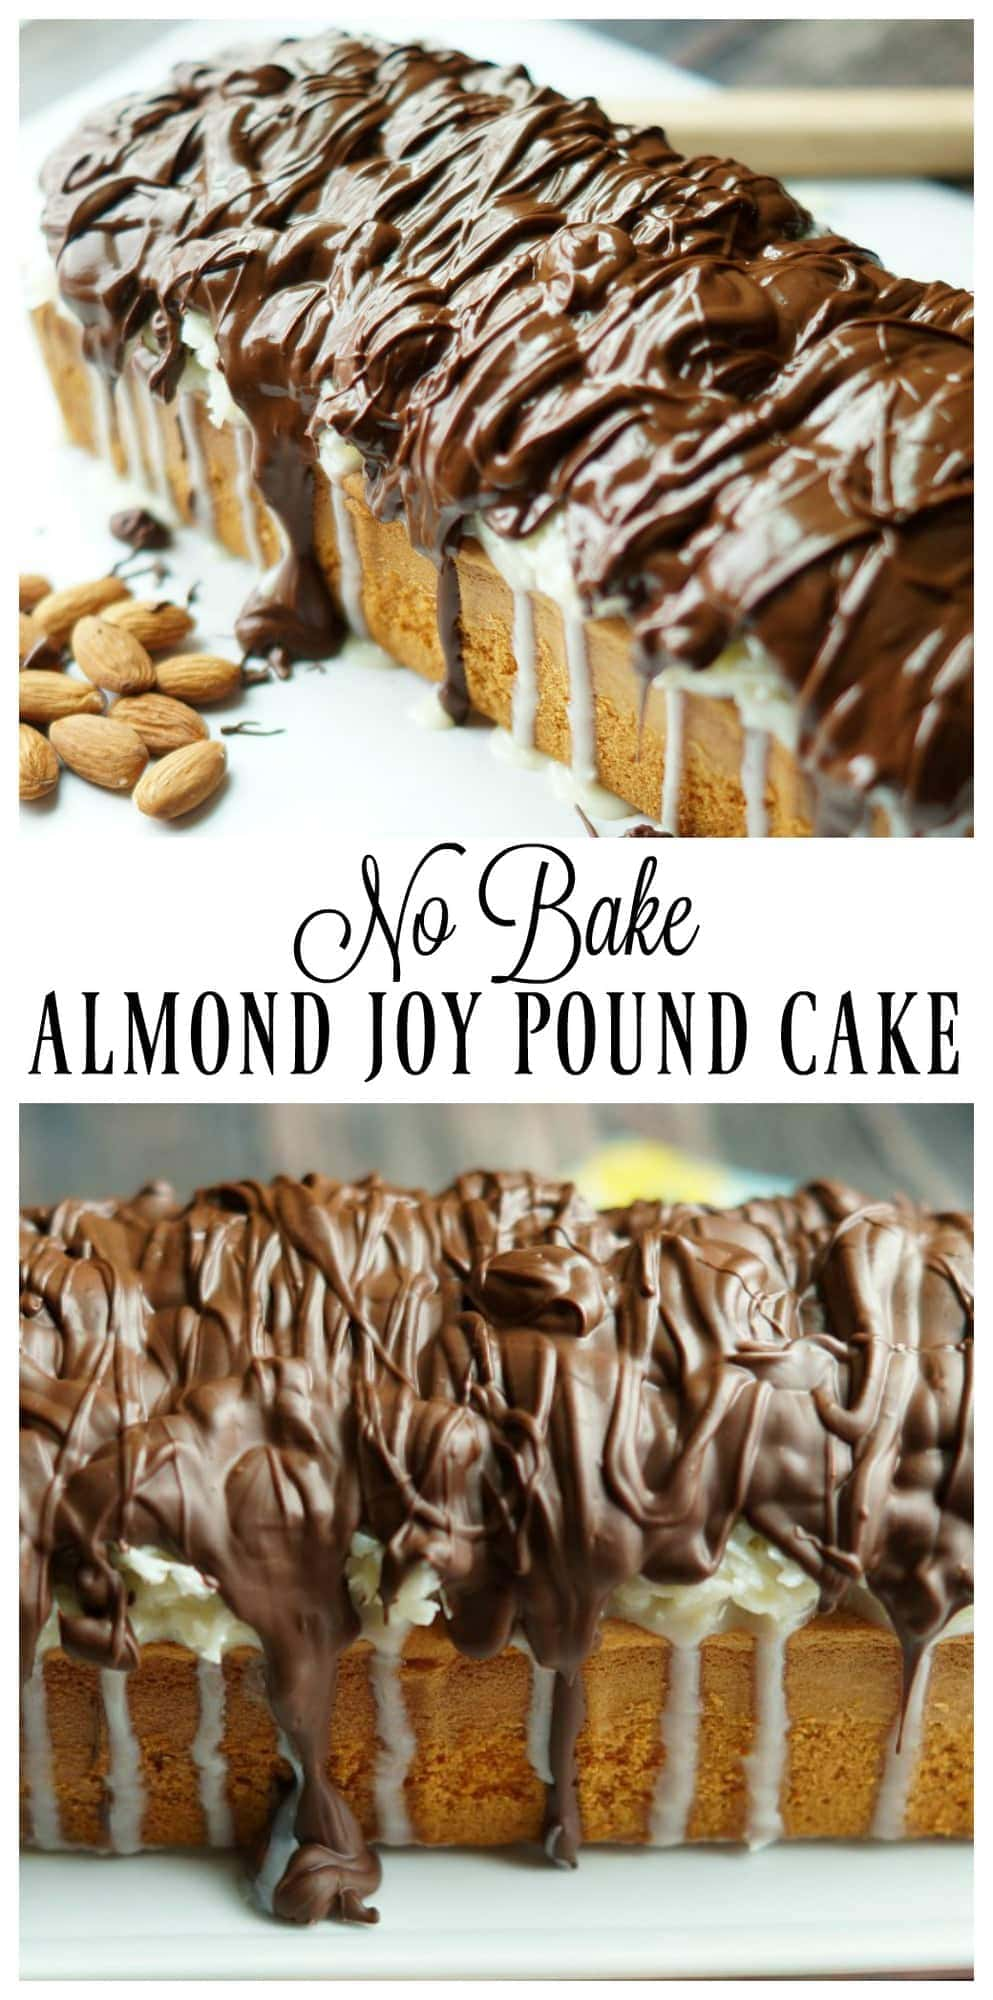 Easy and Delicious No Bake Almond Joy Pound Cake